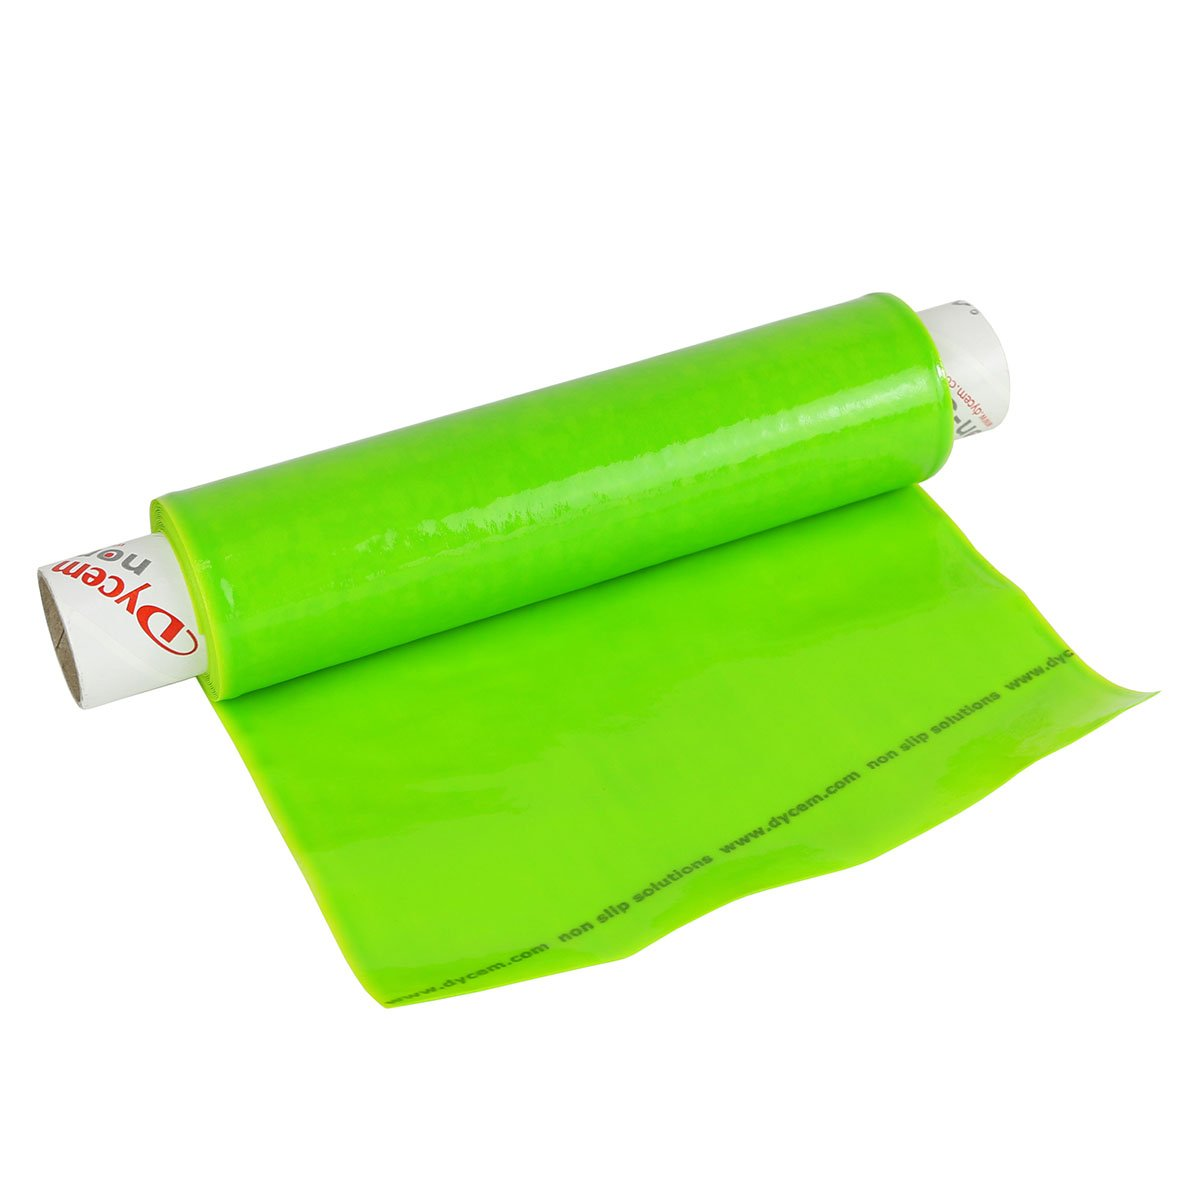 Dycem 50-1501LIM Non-Slip Material Roll x 6-1 Lime Our shop OFFers the best New sales service 8